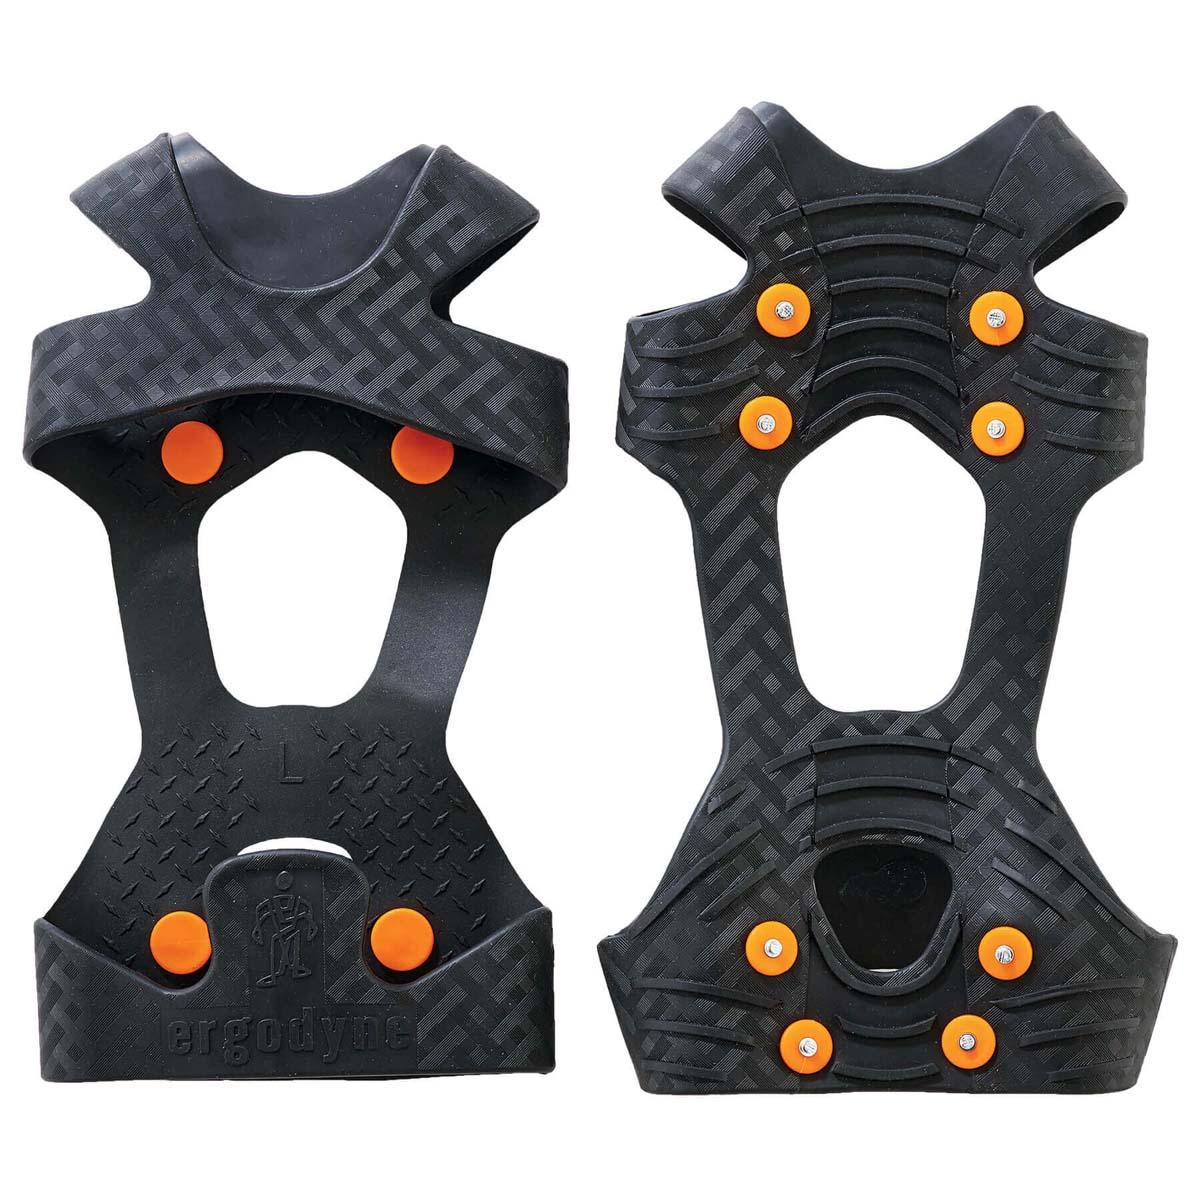 6300 XL Black One Piece Ice Traction Device